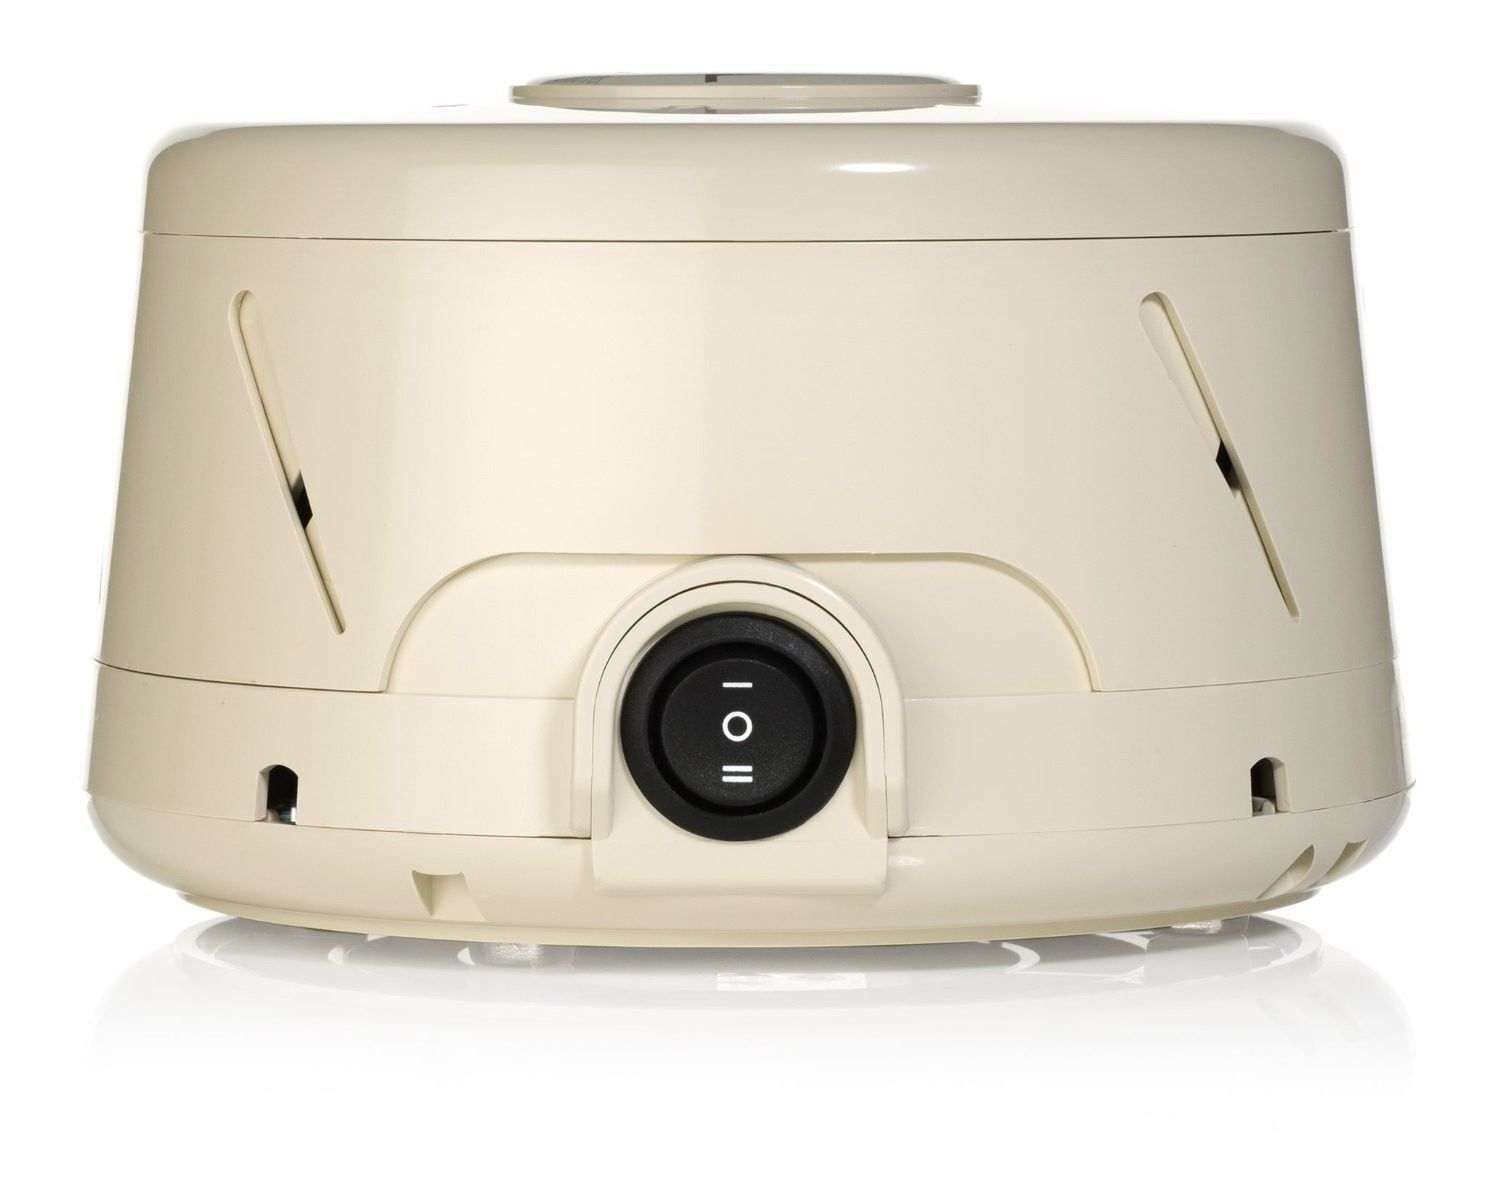 Marpac Dohm DS Dual Speed Sound Conditioner White Noise Tan